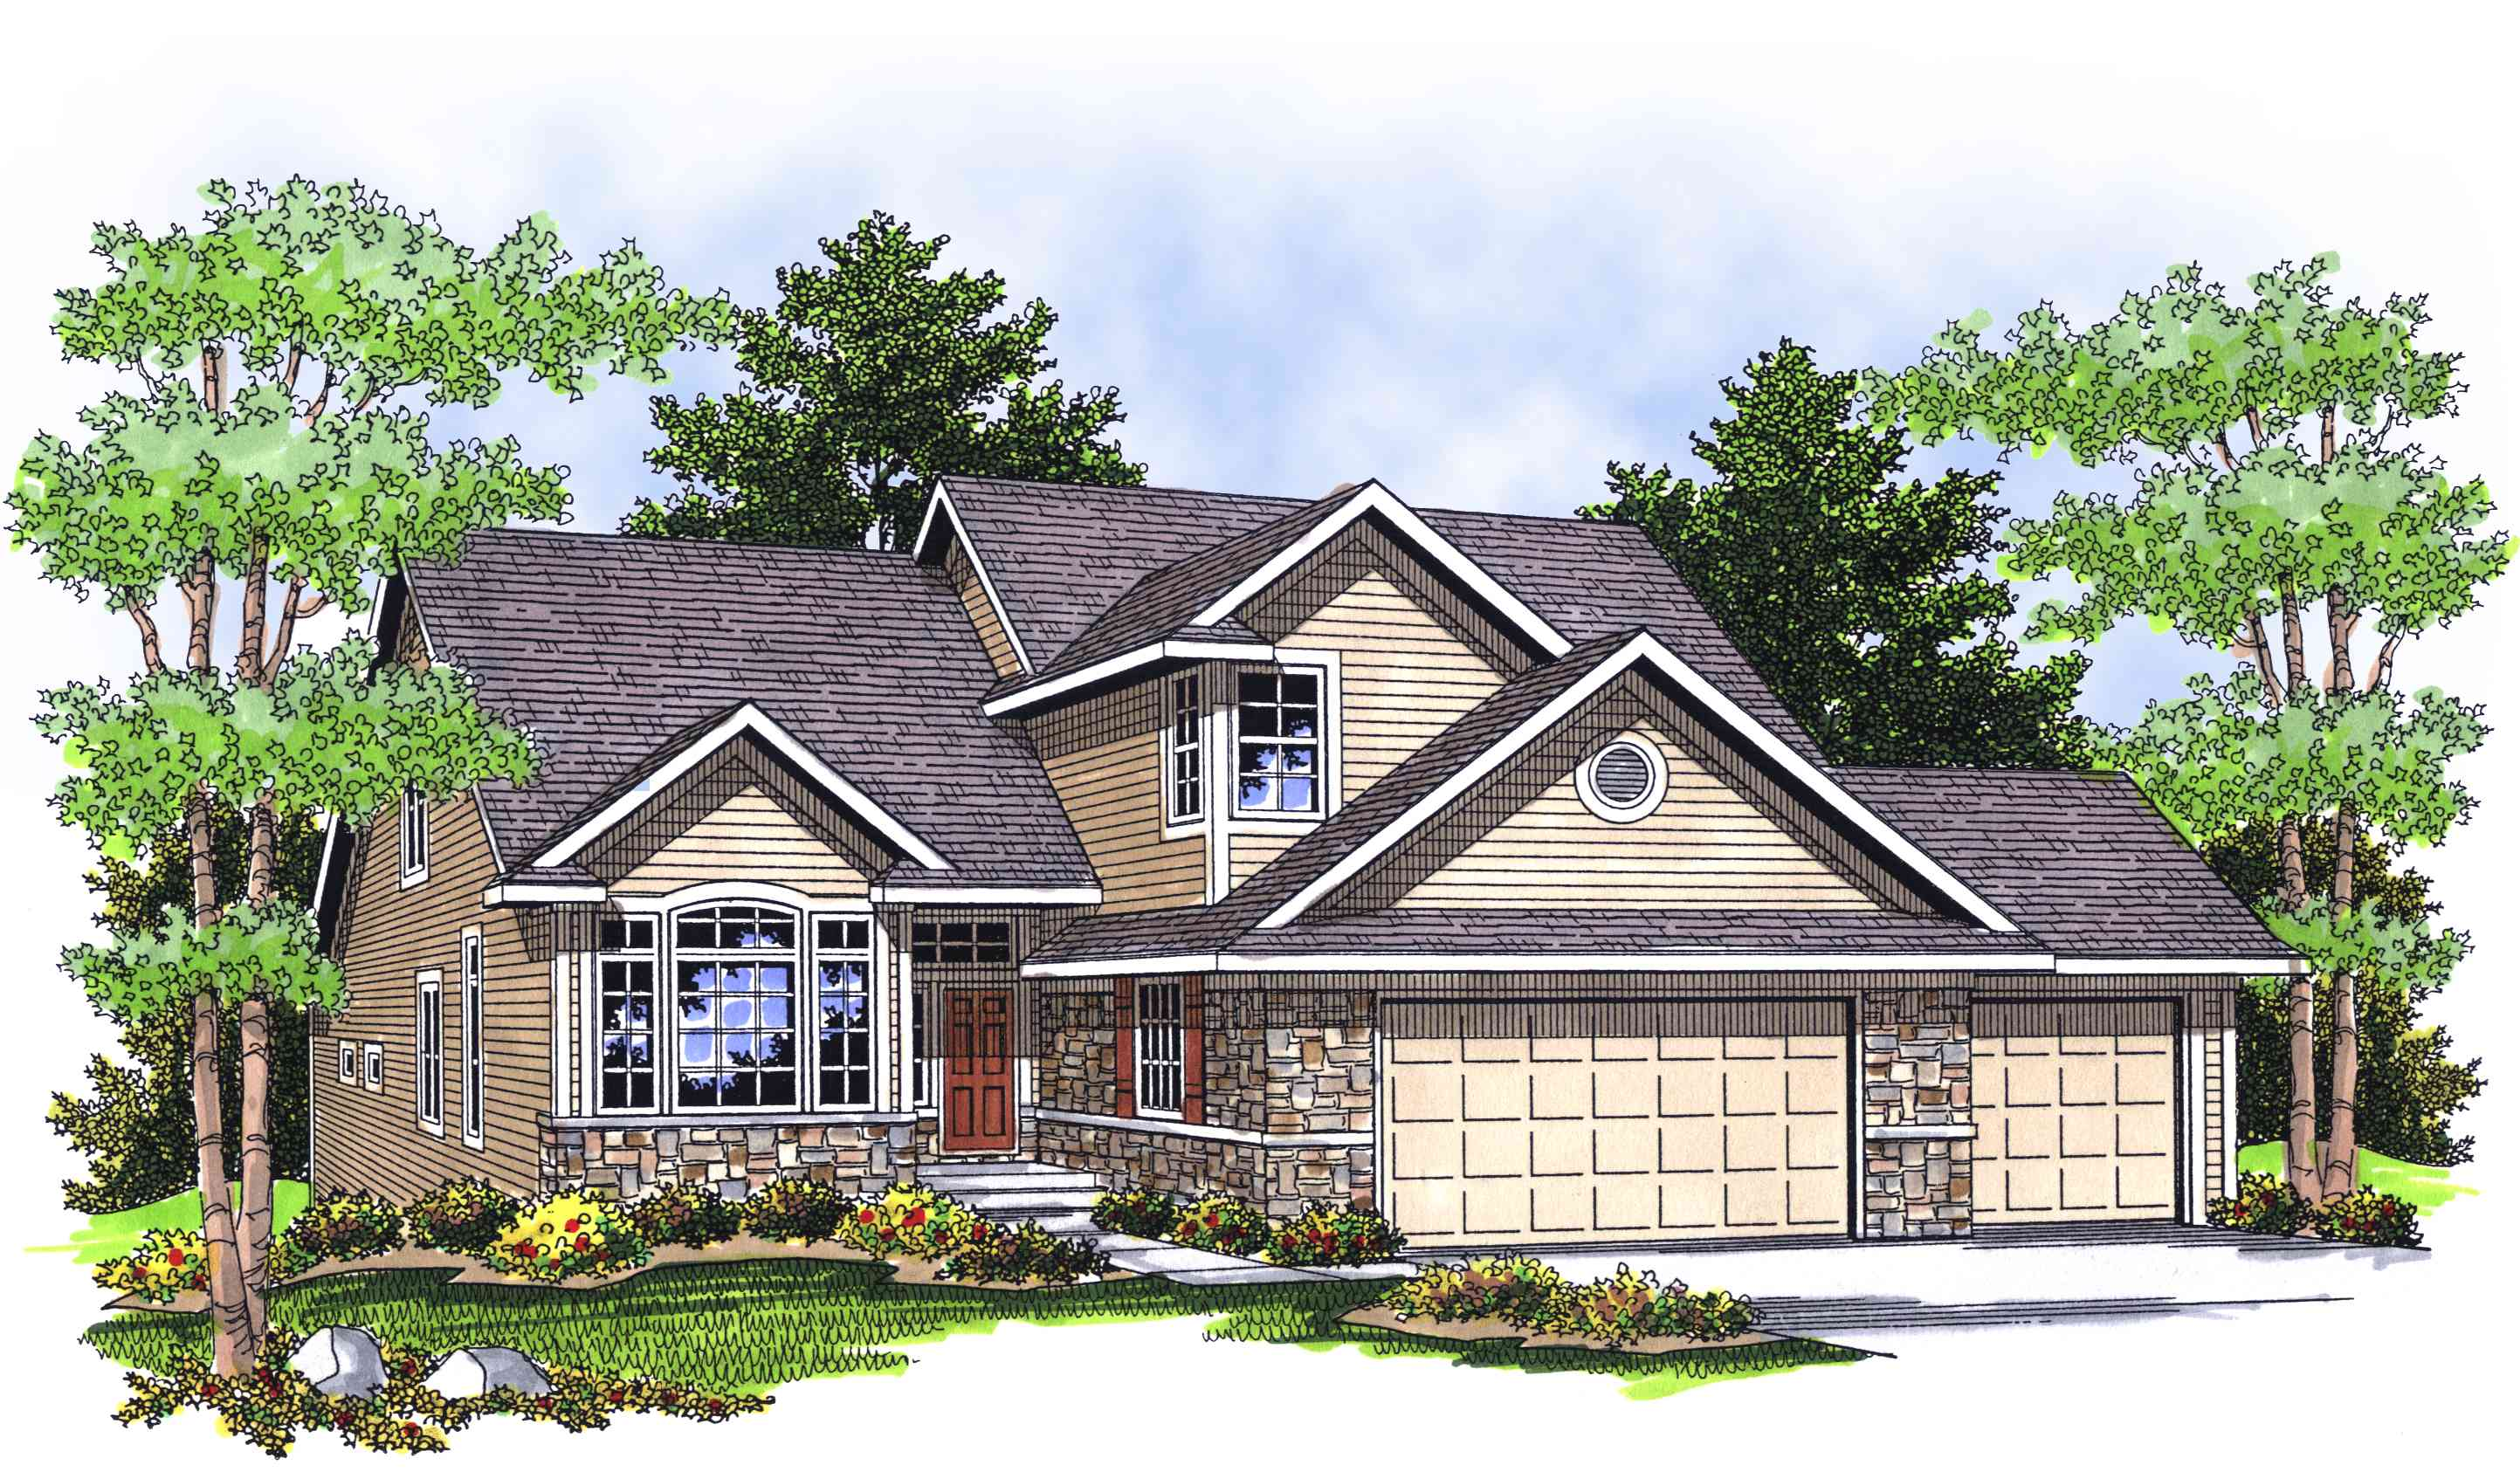 Classic ranch with stone and brick accents 89018ah for Classic ranch house plans